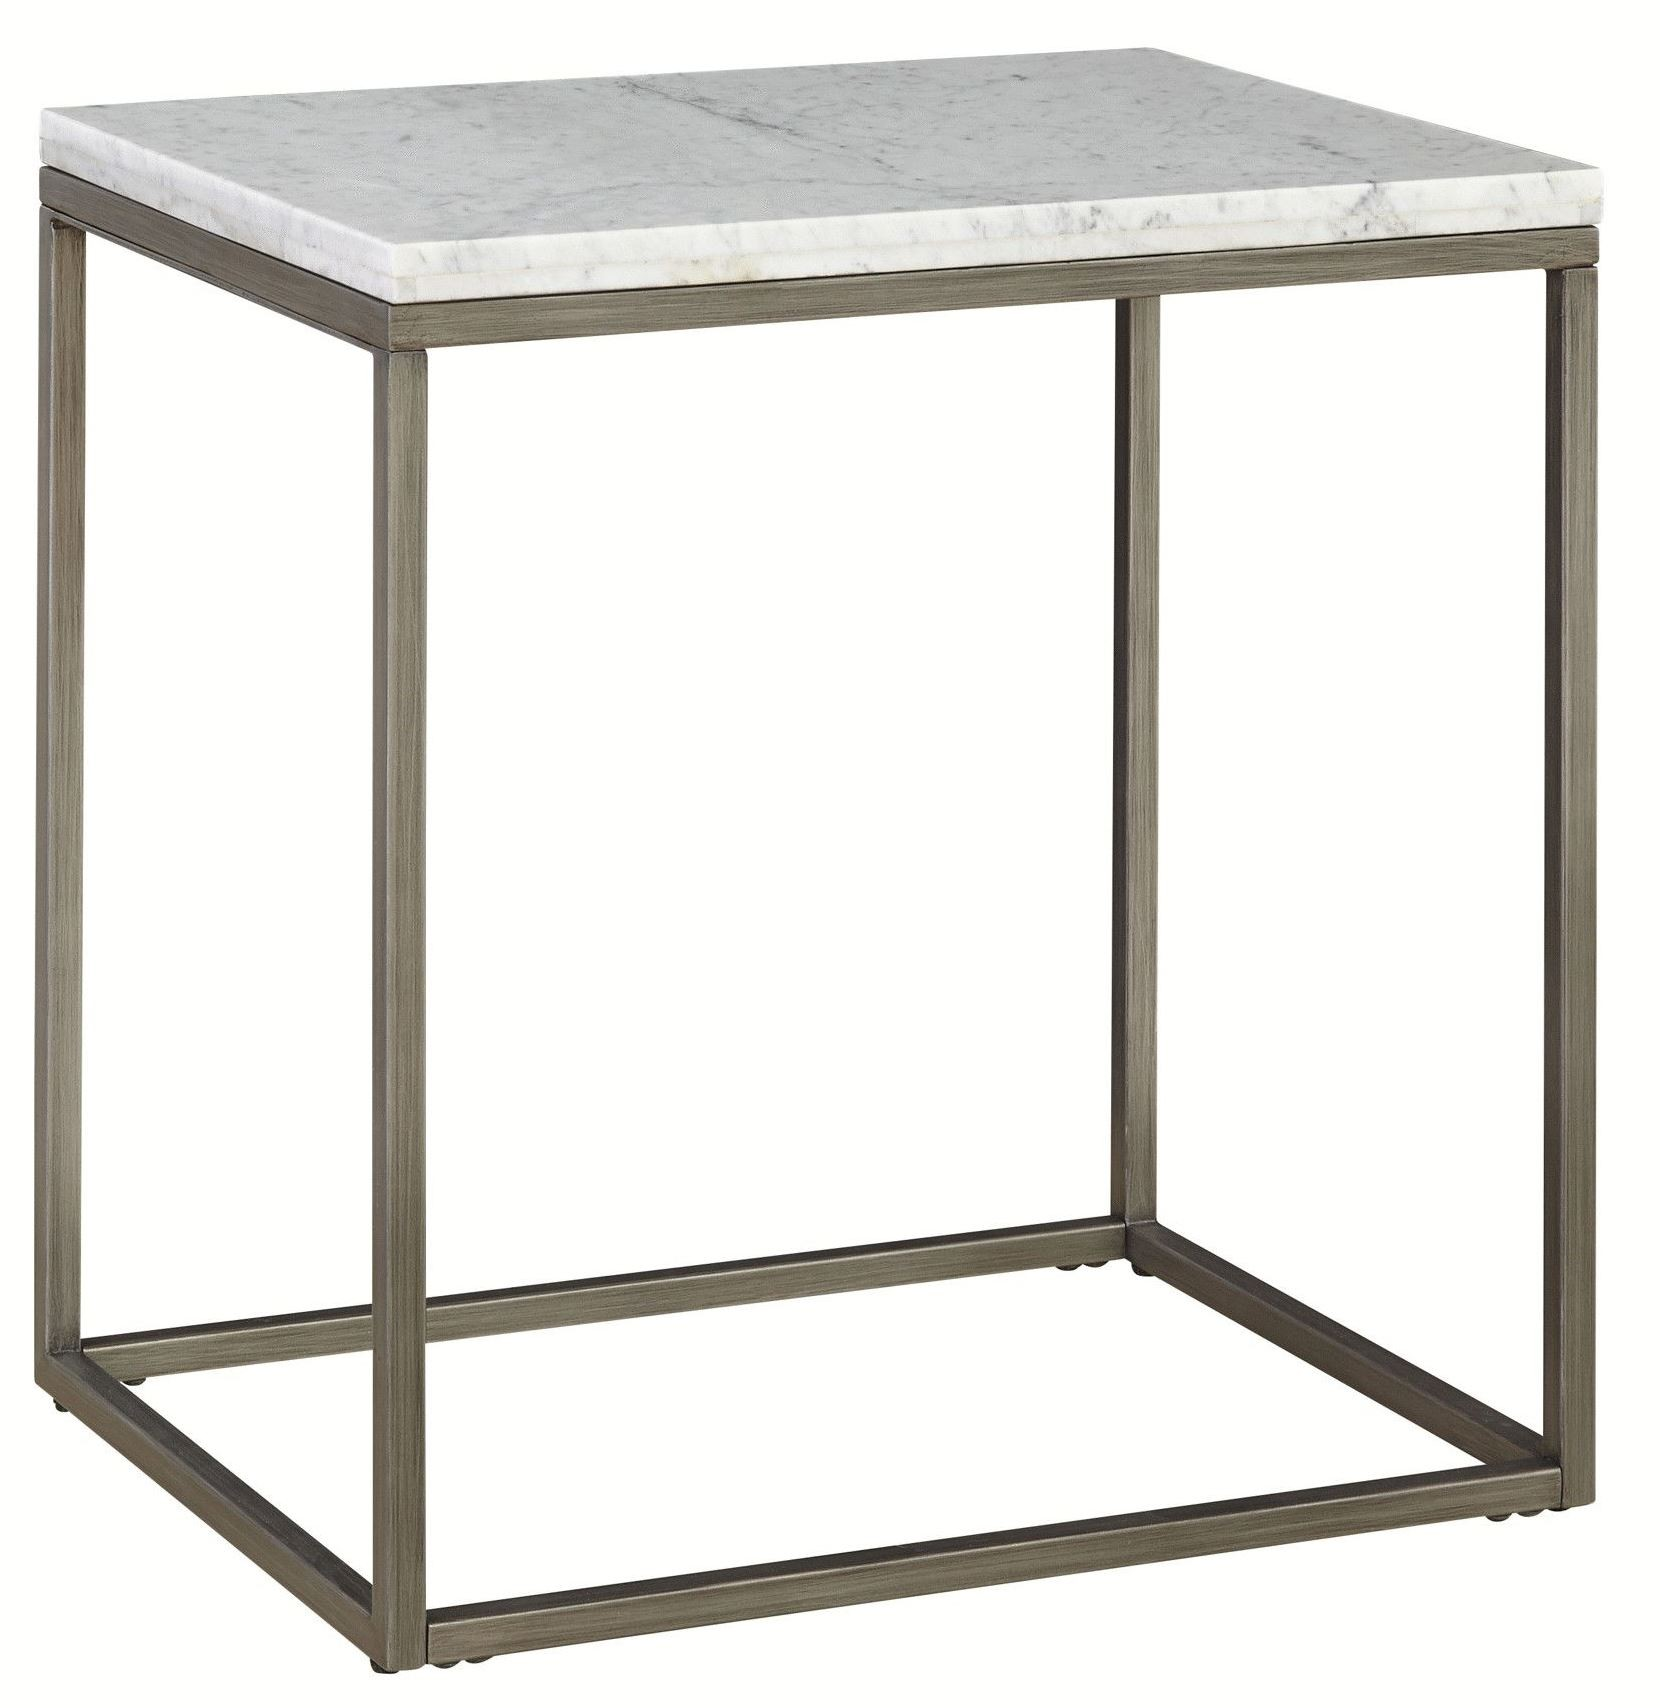 Square Marble Top Aviero Outdoor Occasional Coffee Table: Alana Acacia Marble Top Rectangular End Table From Casana